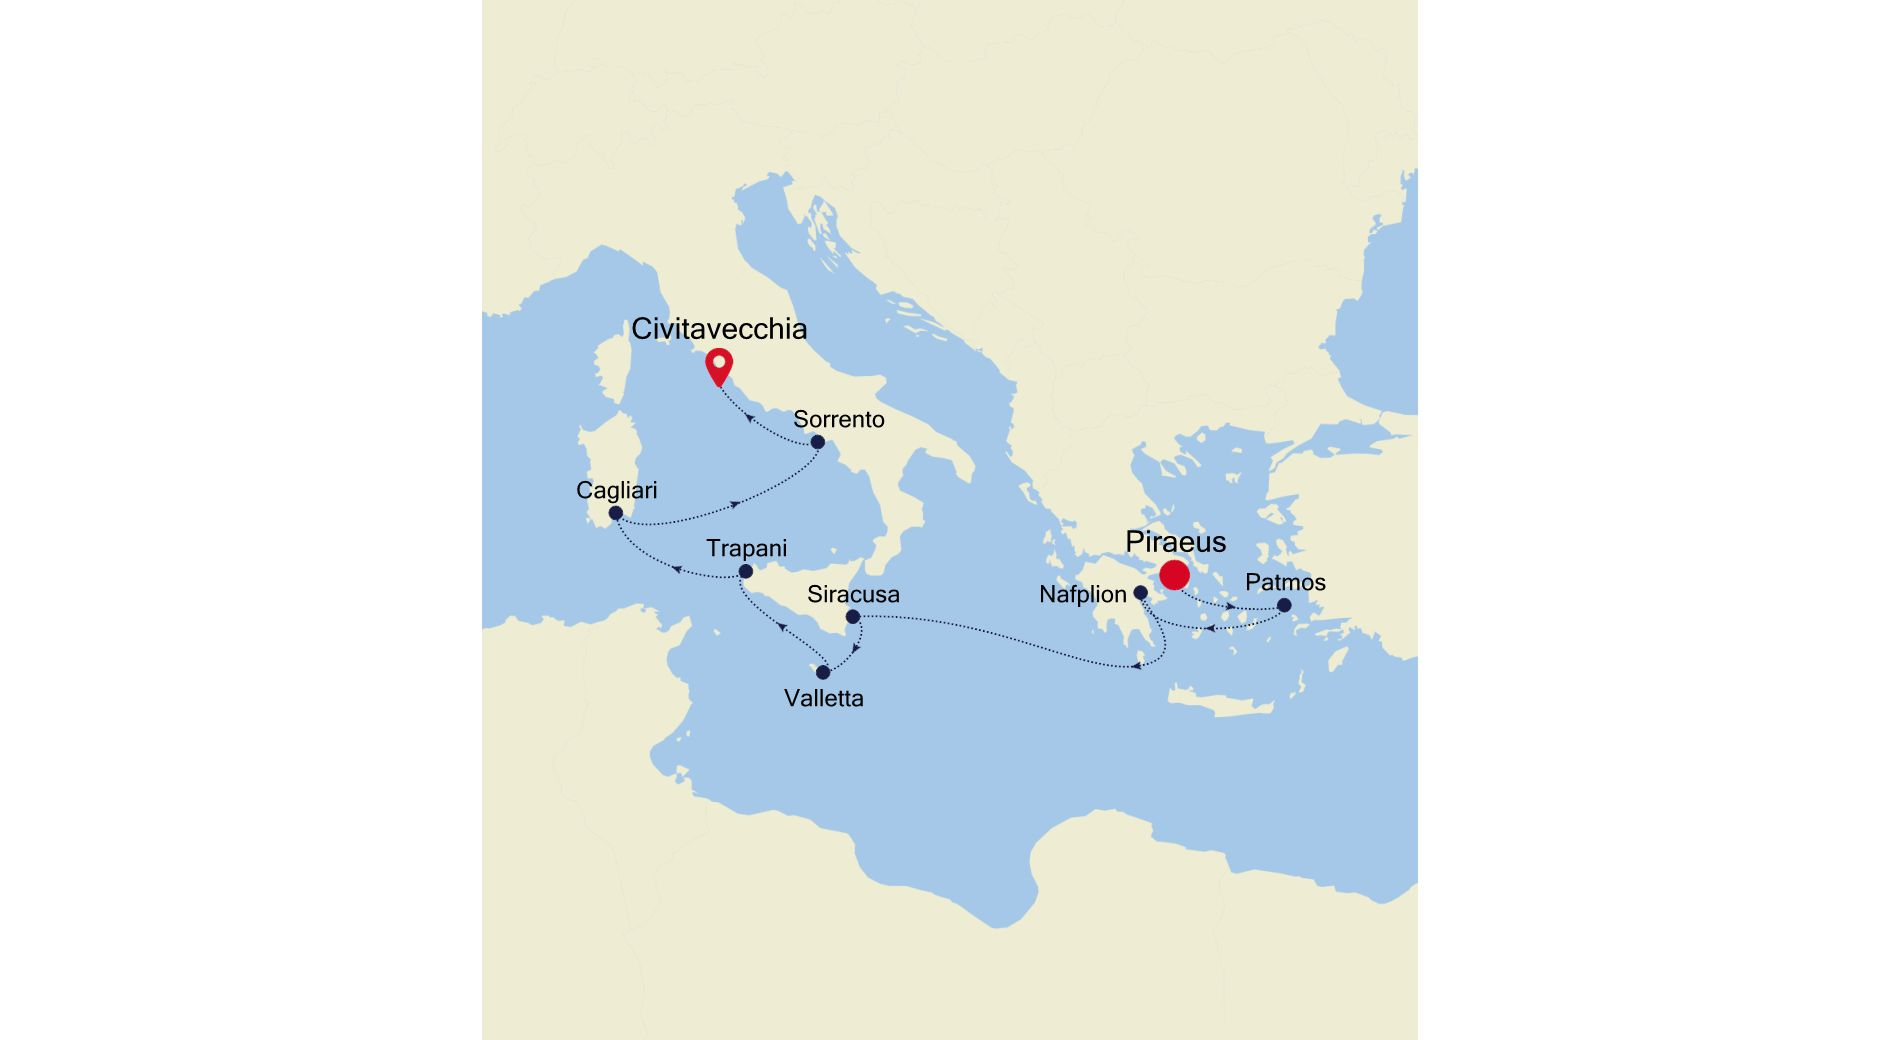 3918 - Piraeus to Civitavecchia